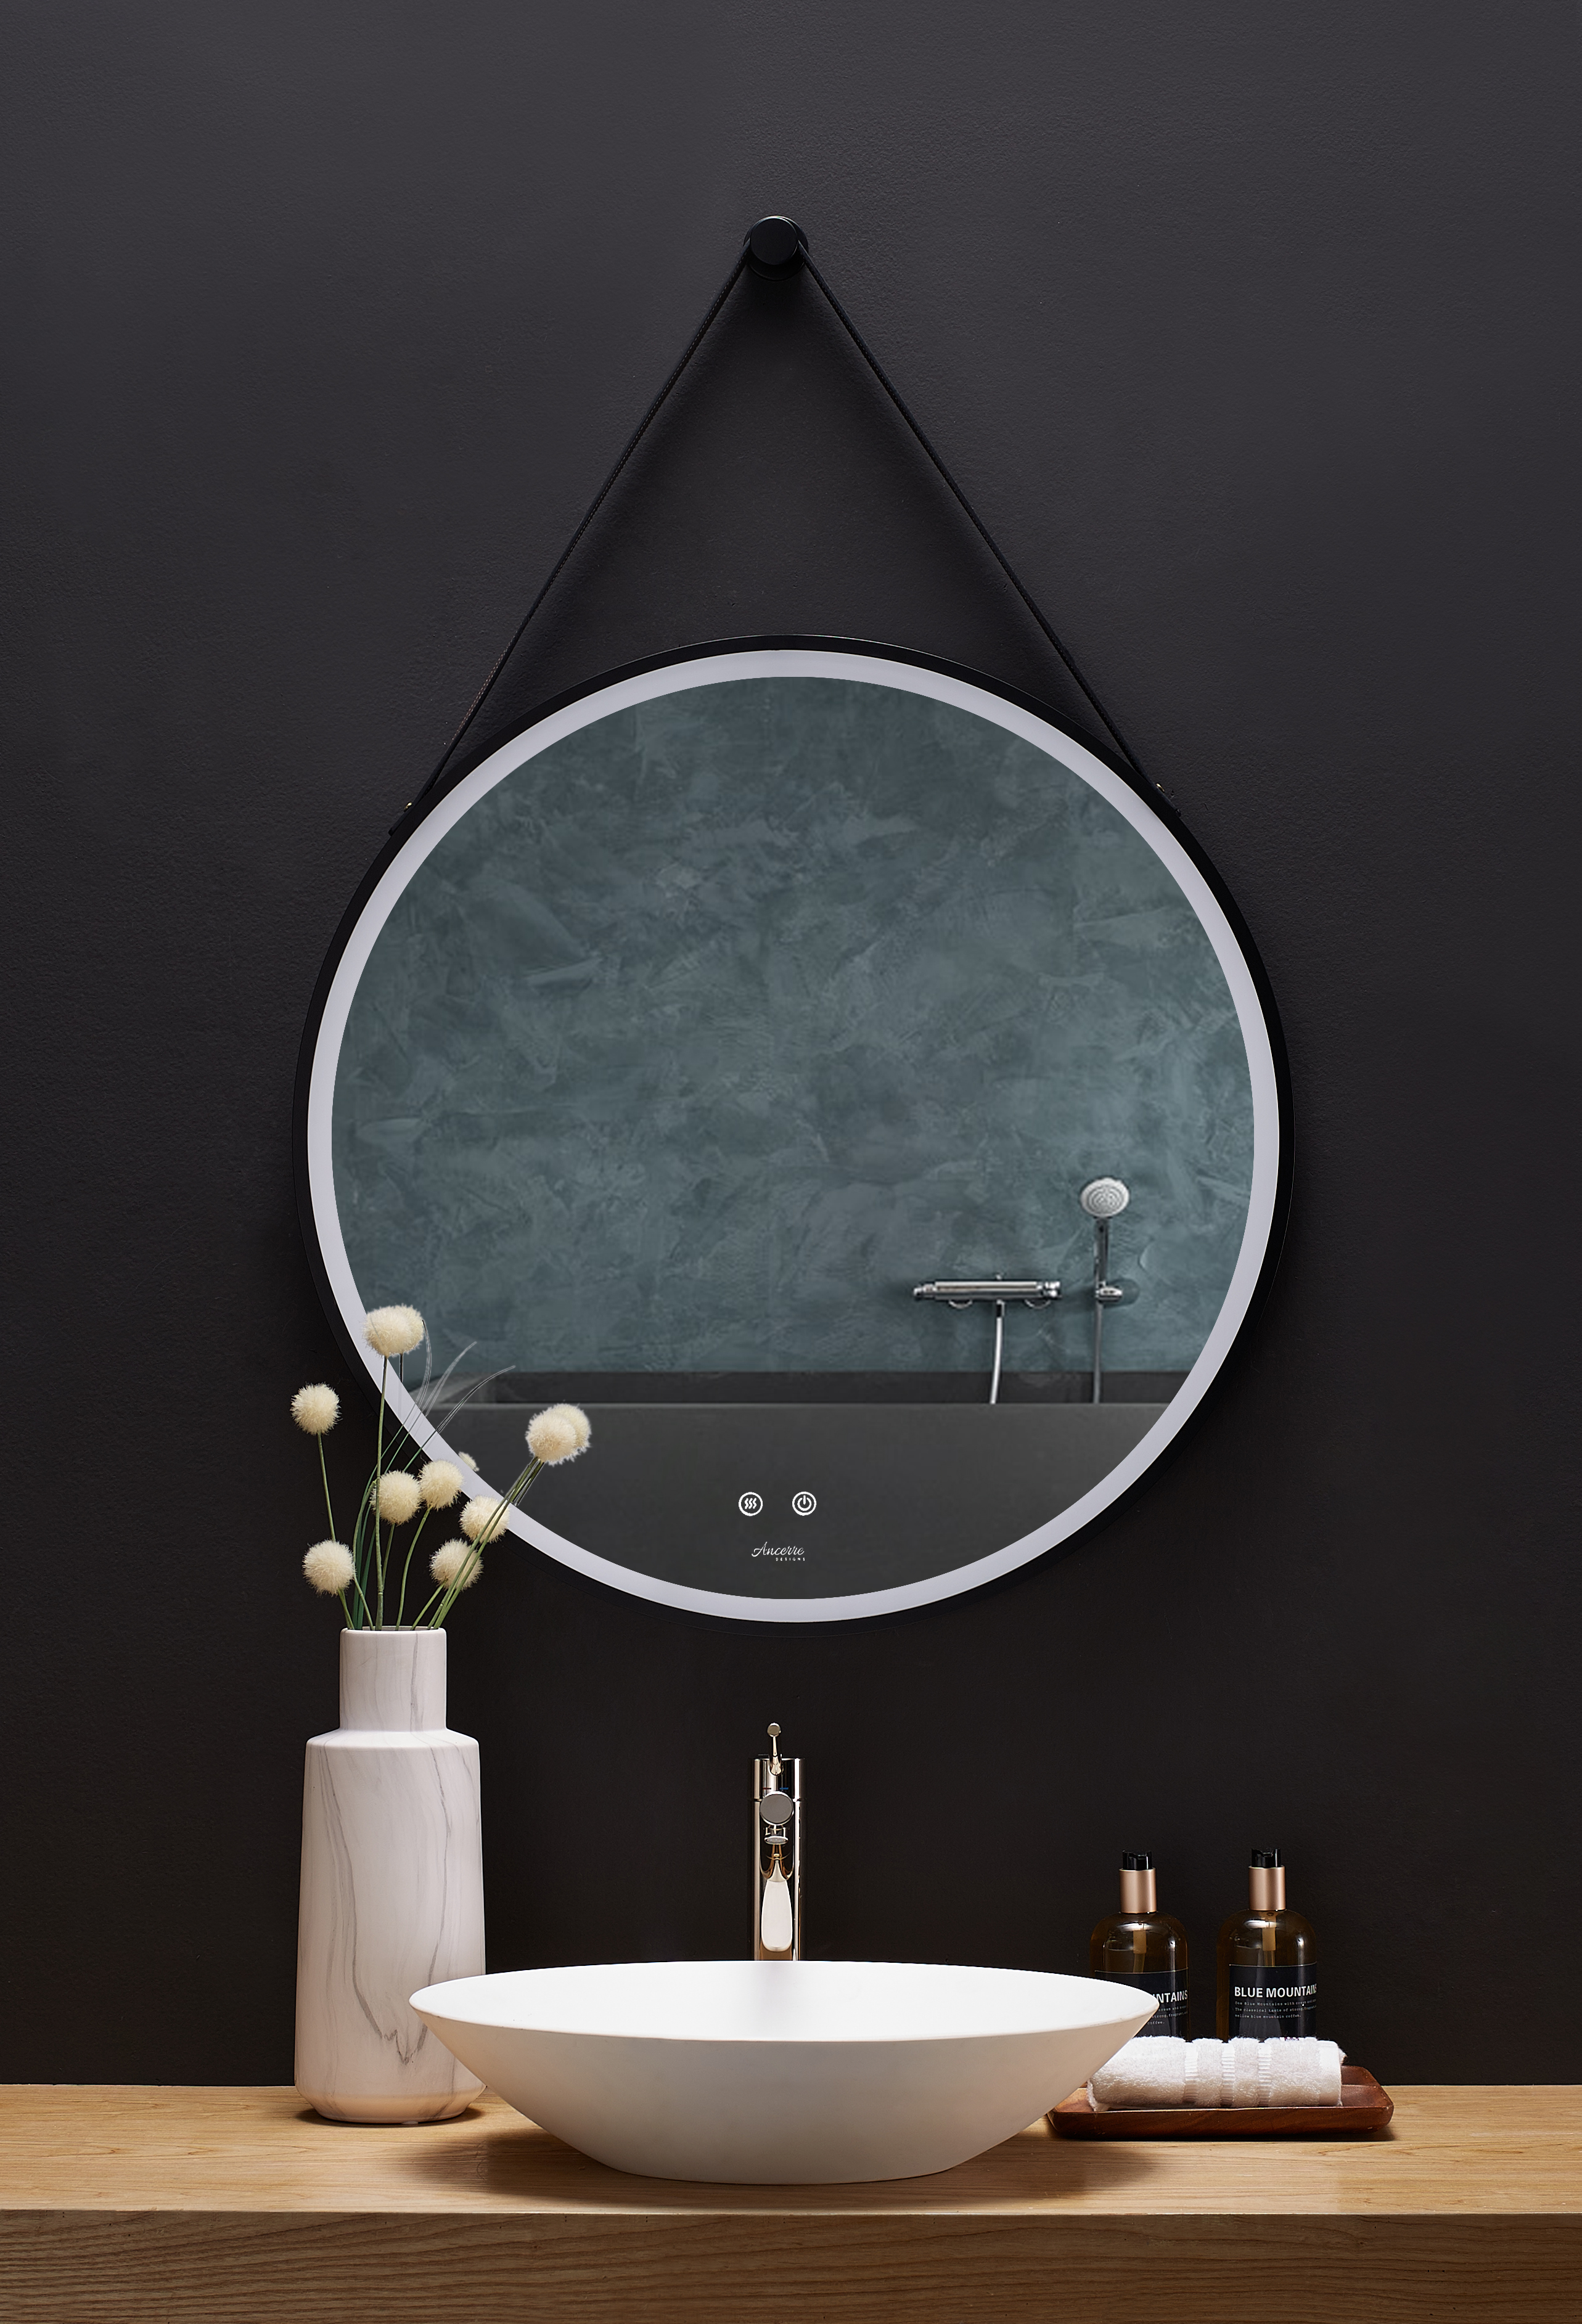 24 in. Round LED Black Framed Mirror with Defogger and Vegan Leather Strap